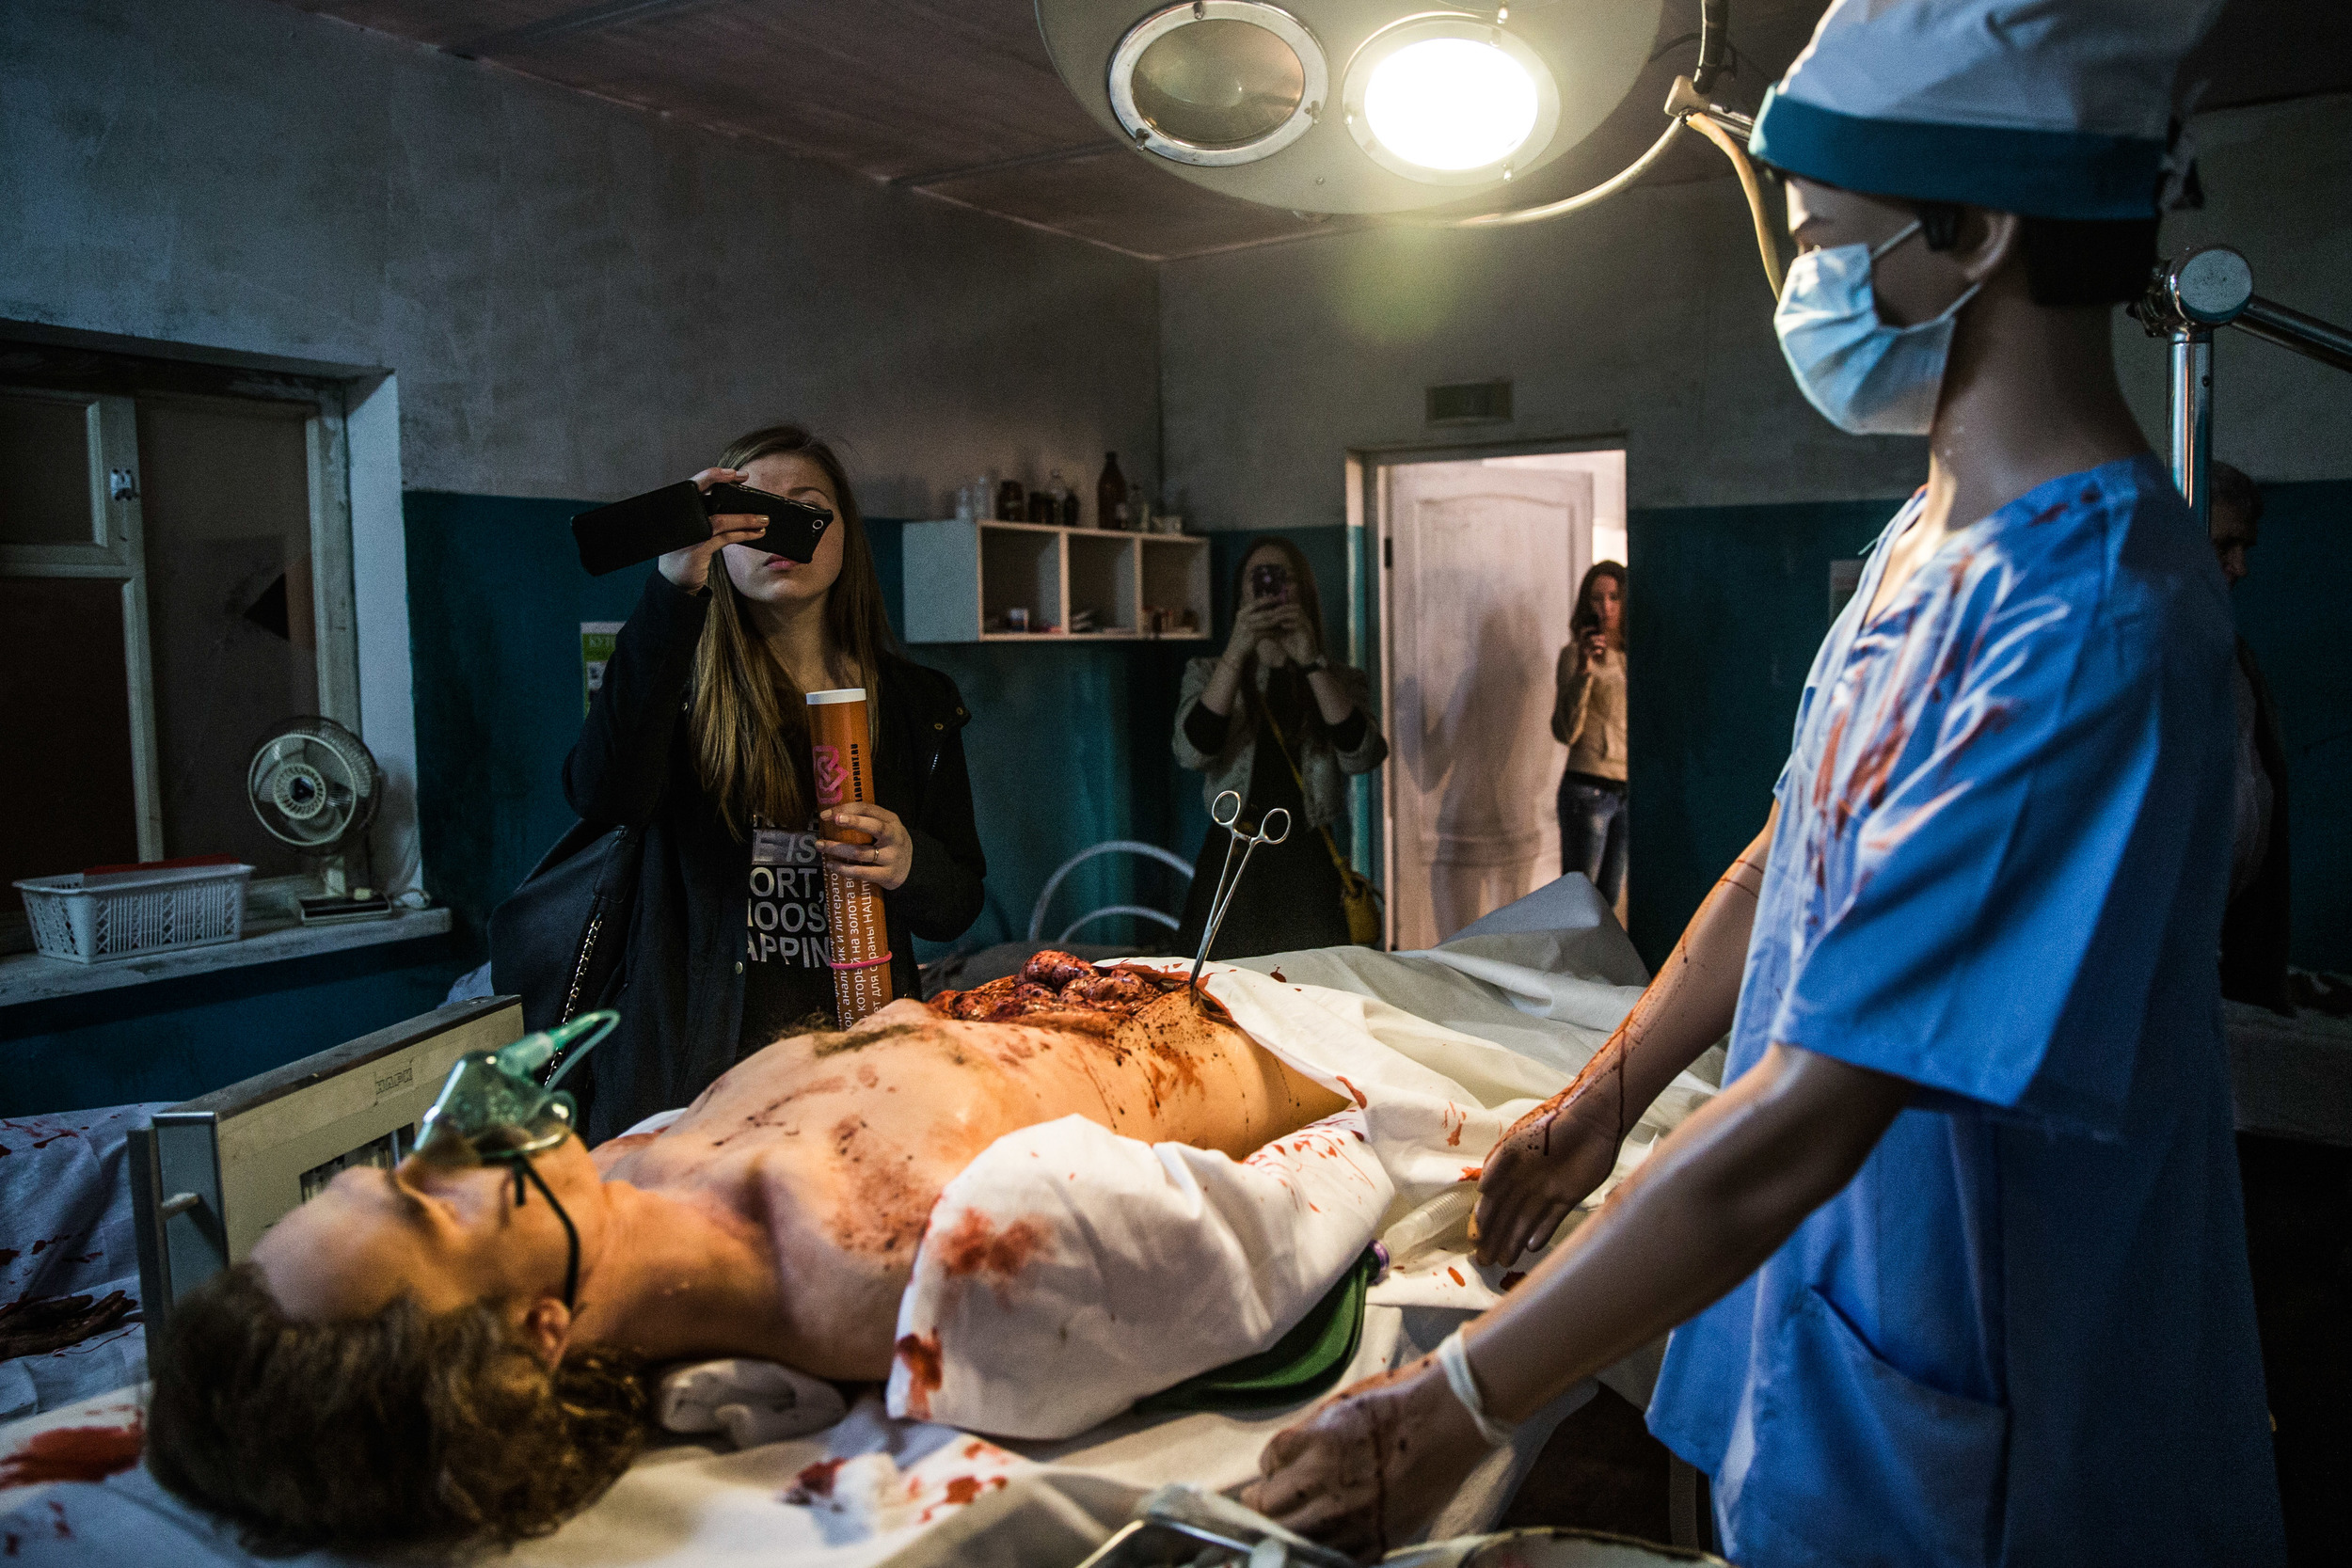 """Visitors photograph a mock up hospital room that is a part of exposition at """"Donbass. Material evidence"""" exhibit in Moscow"""